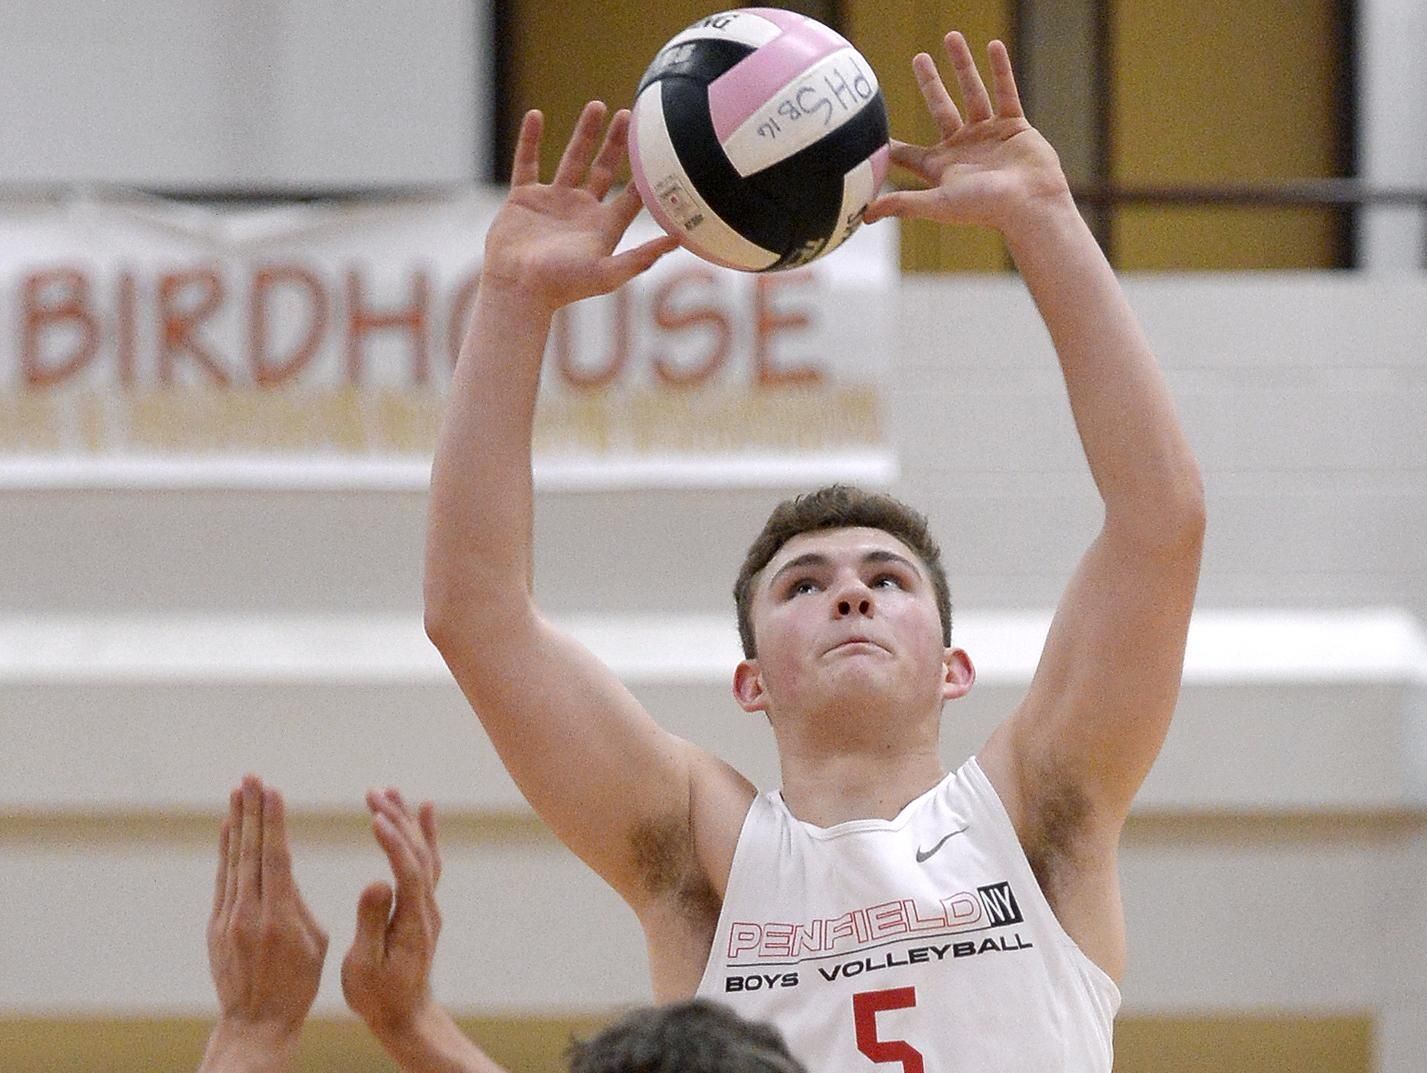 Penfield's Jordan Solomon sets the ball for teammate Andy Scott during a Section 5 Class A sectional quarterfinal at Penfield High School on Wednesday. Penfield advanced with a 3-0 win over Webster (25-14, 25-13, 25-11).